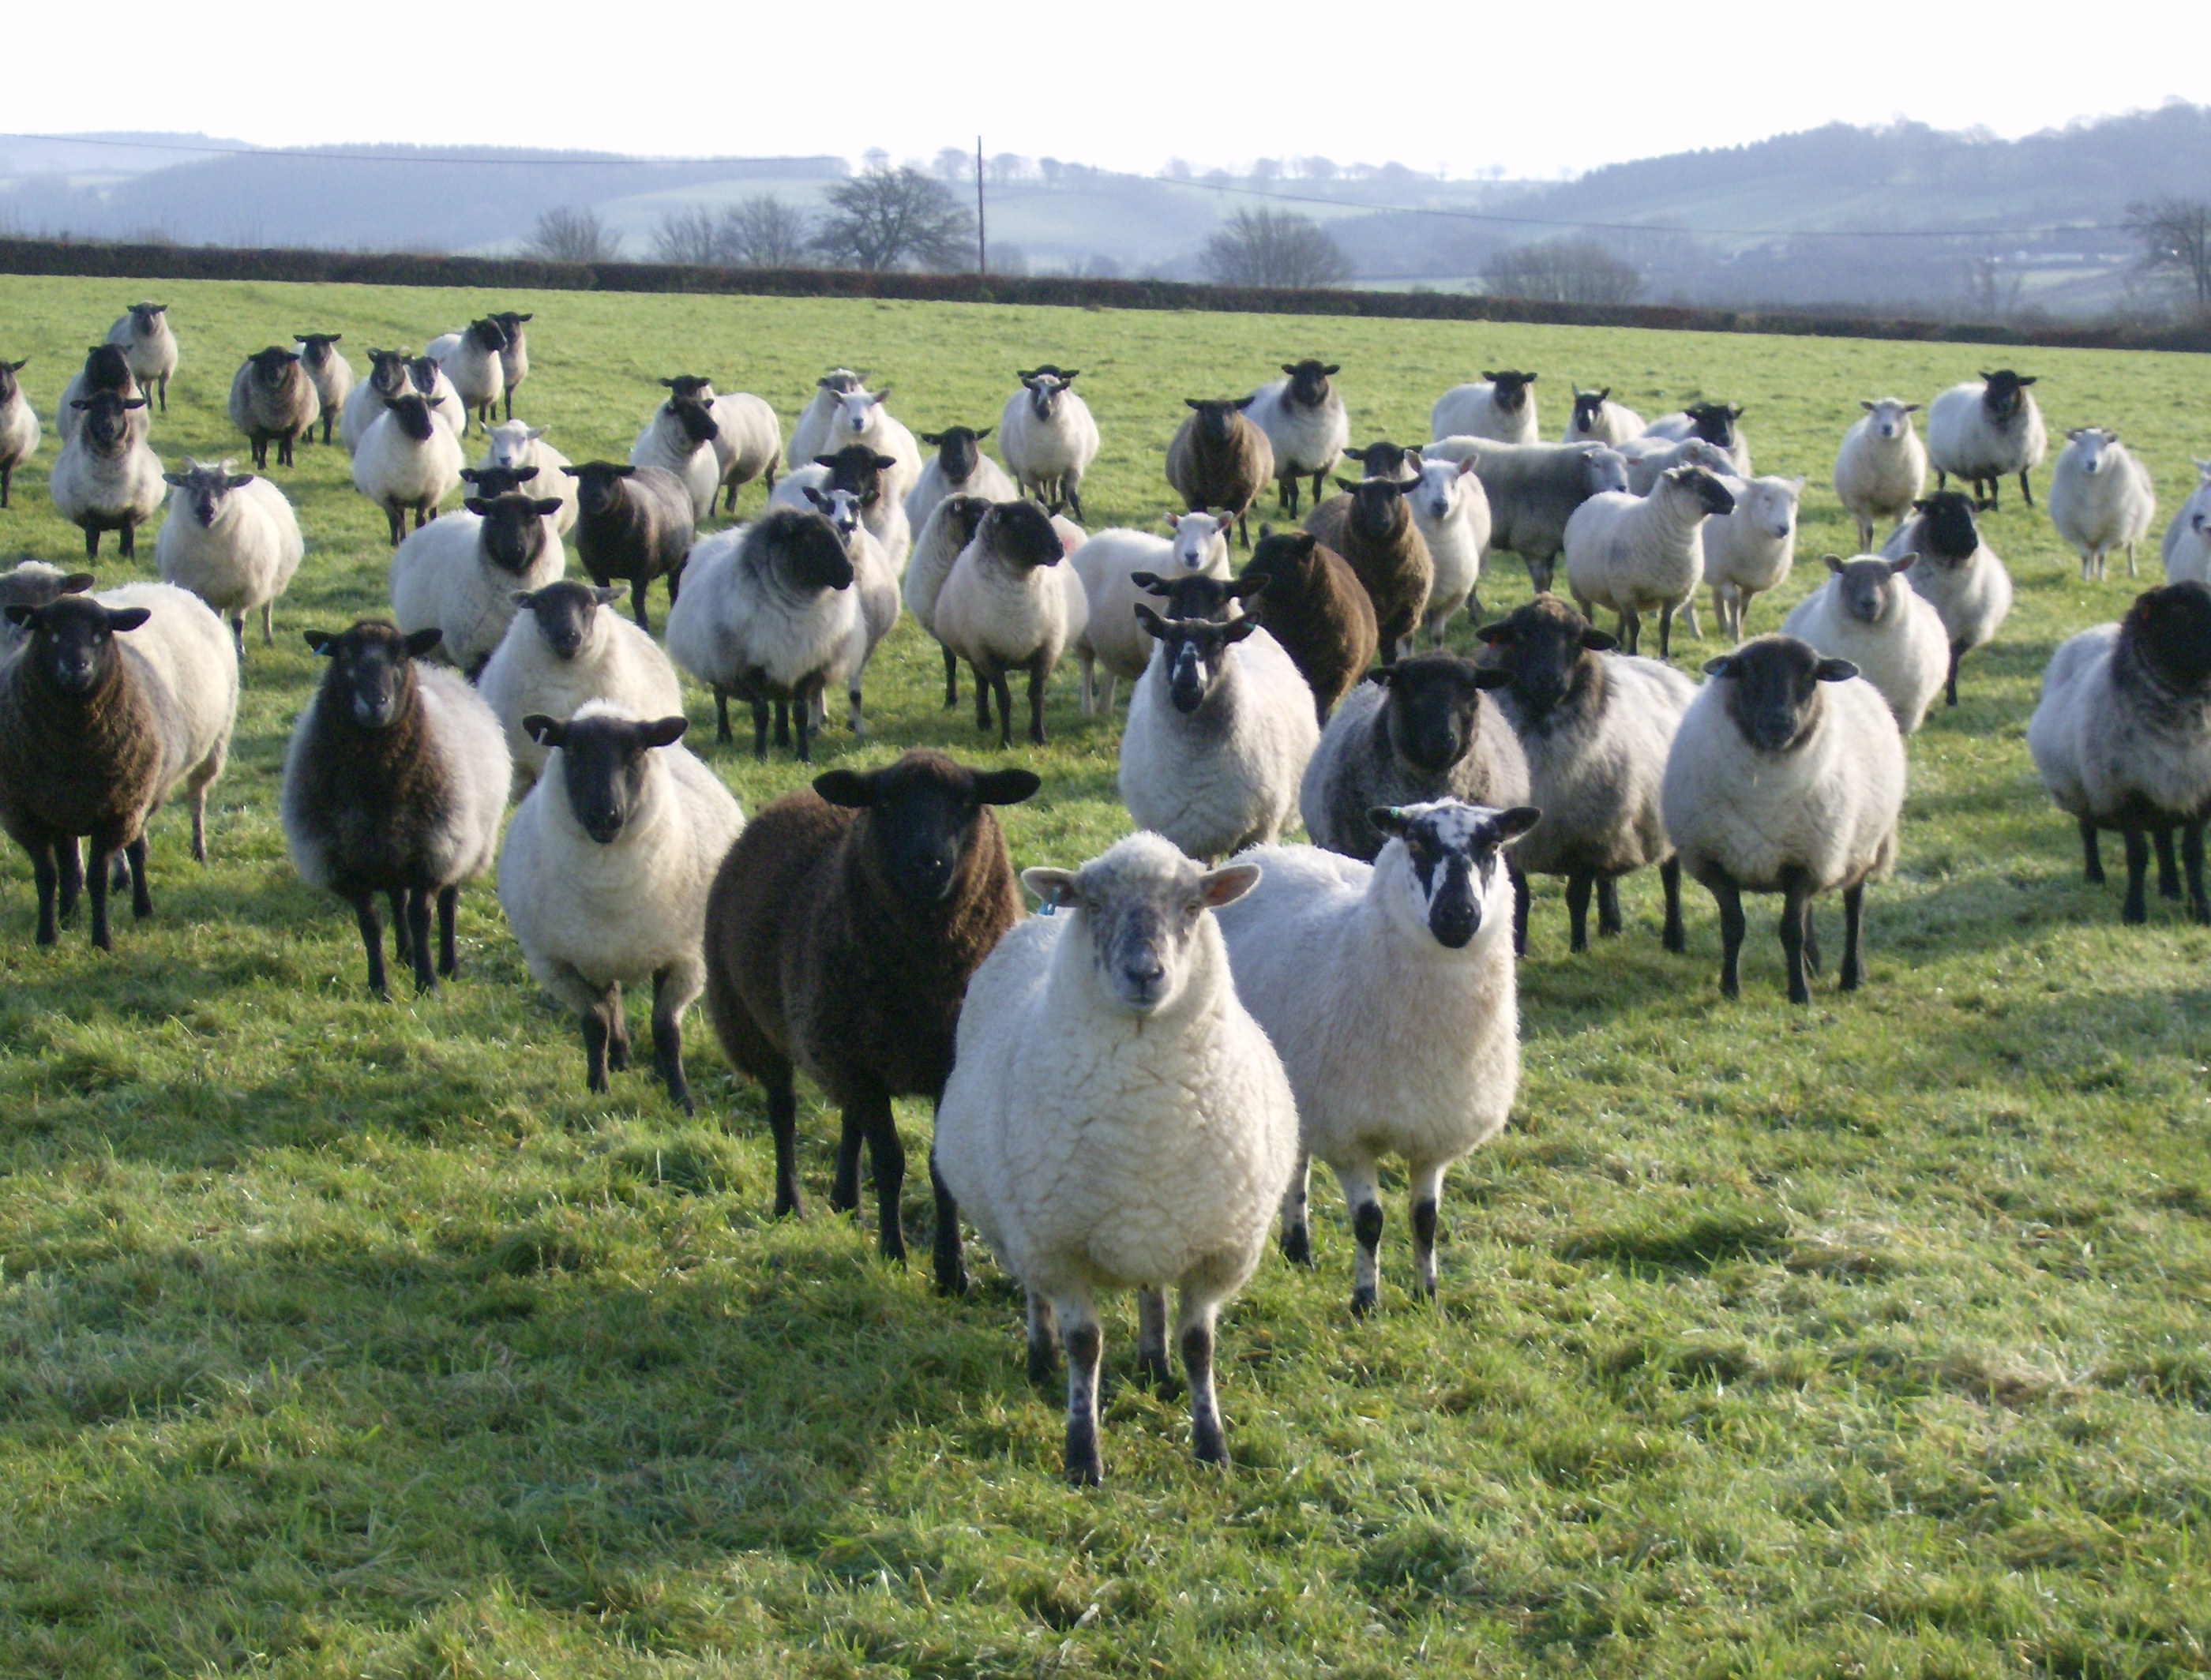 Sheep and goats gain benefits from sugar beet feed